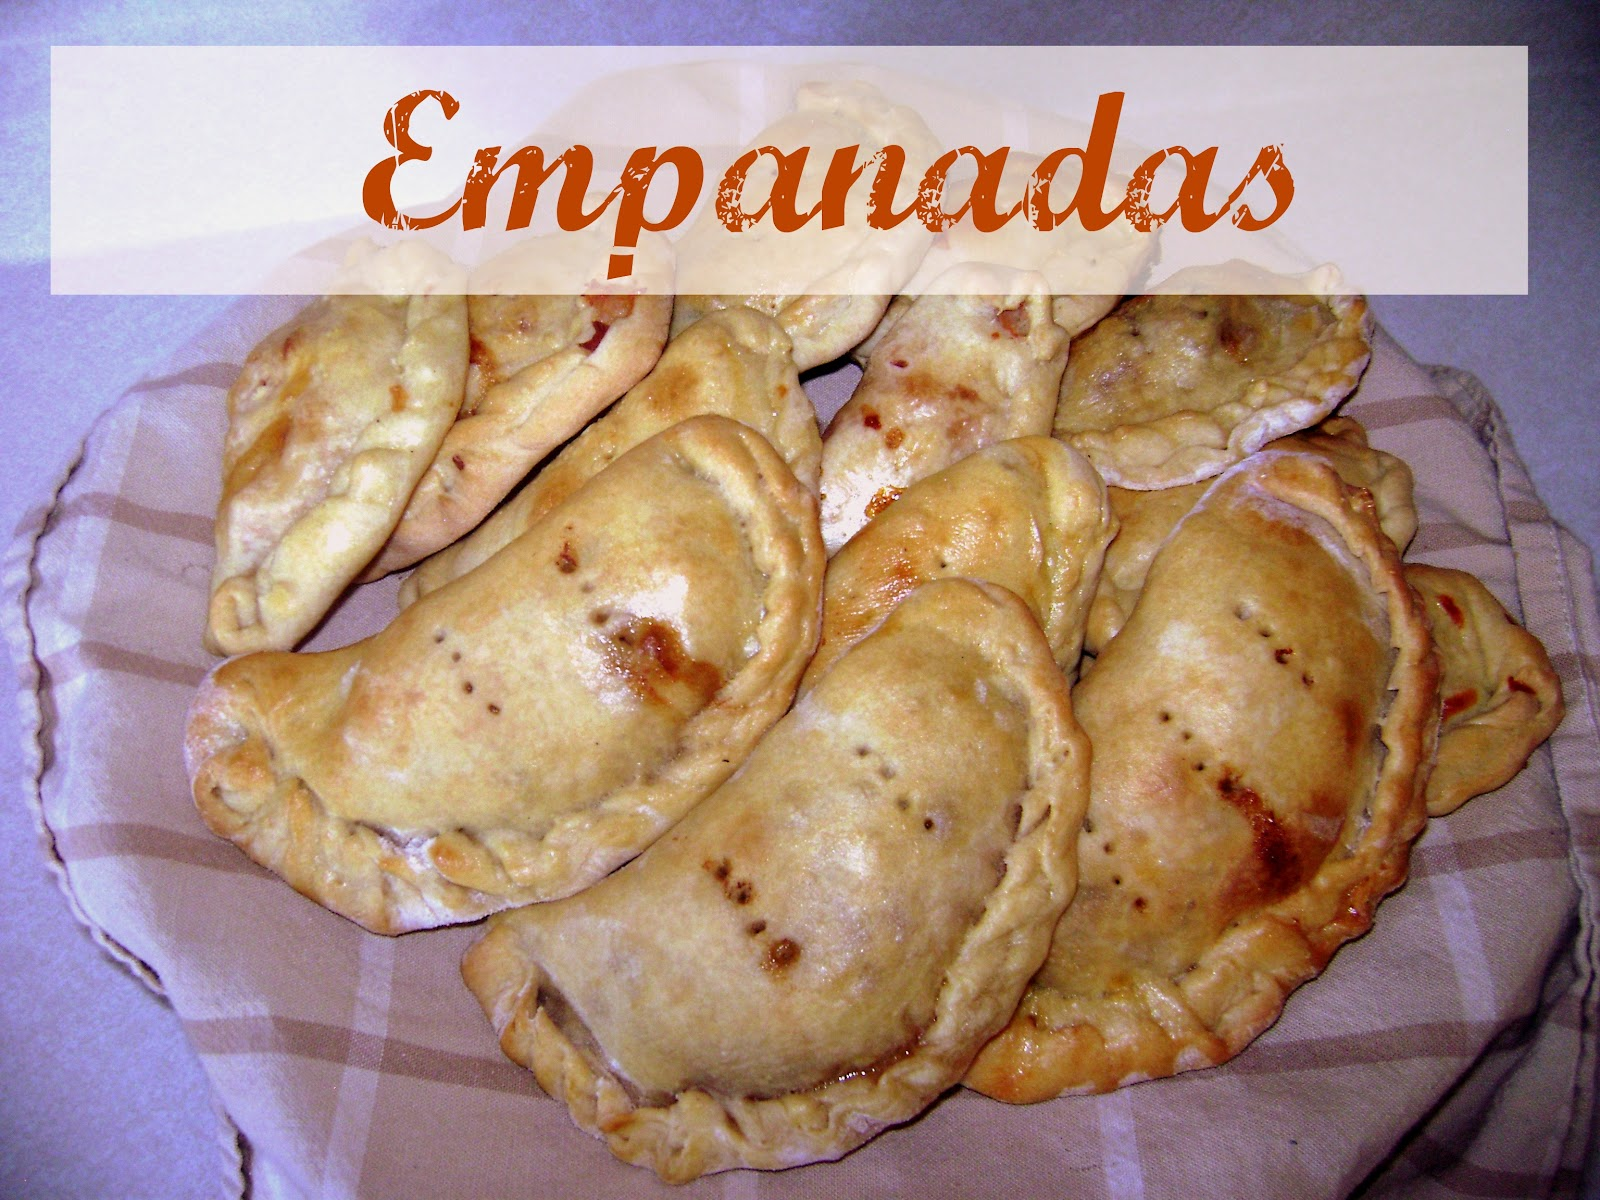 The family fun spot uruguayan empanadas as you know i am from uruguay i come from a culture of great food we have a lot of european culture mixed in our own and food is one of those forumfinder Choice Image